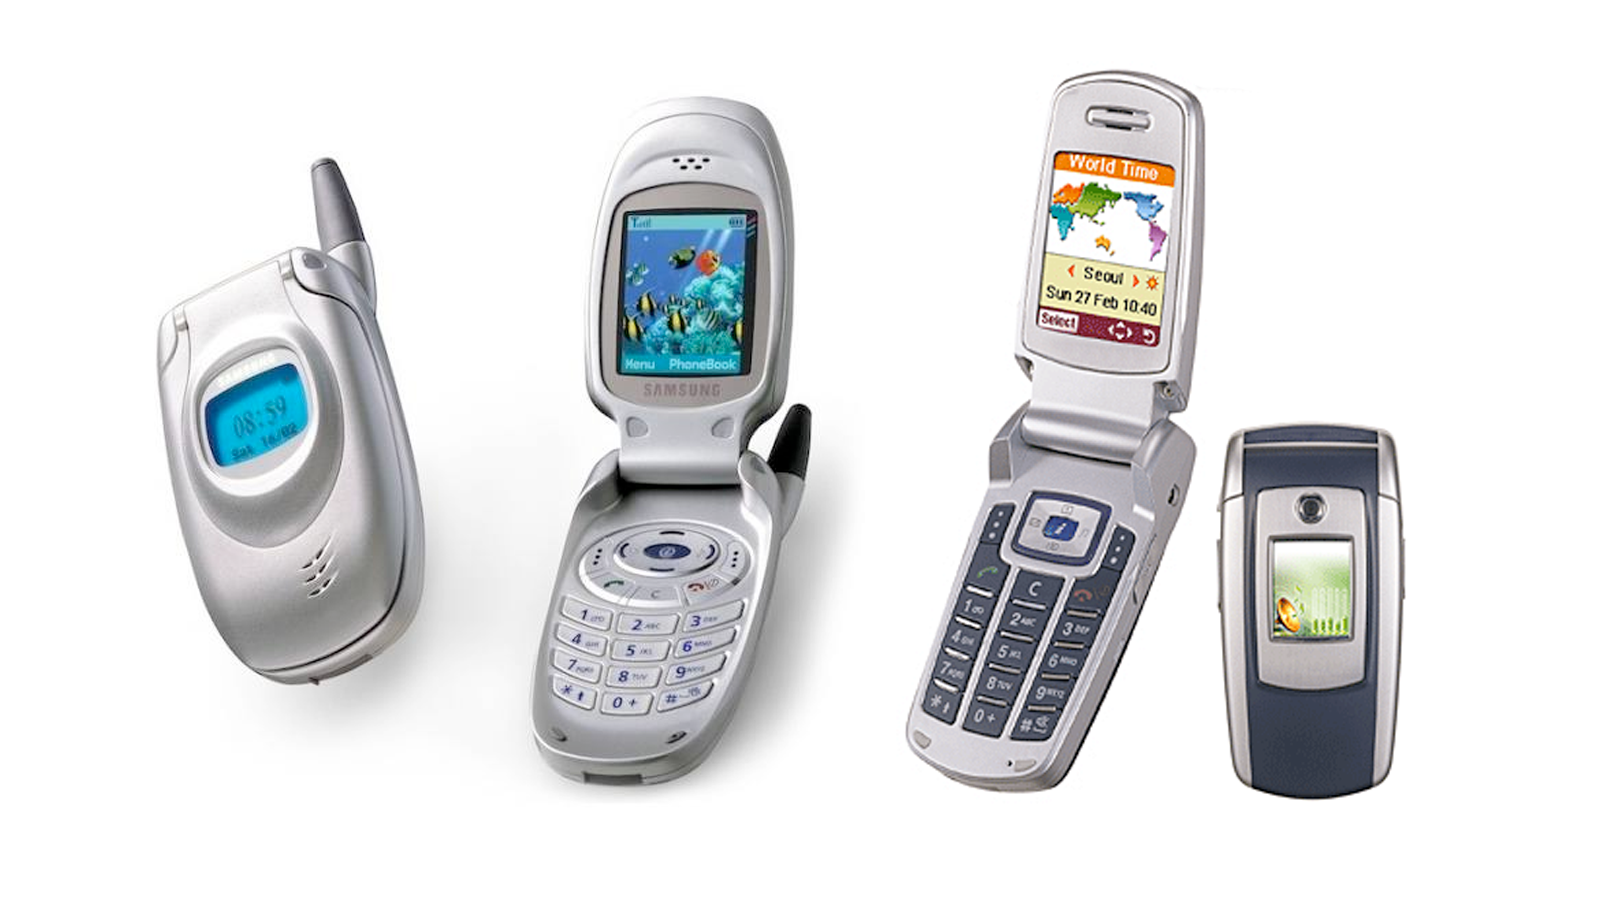 A photo of nycall T100 (SCH-X430 in the US) and Anycall E700 (SG-E700) cellphones.